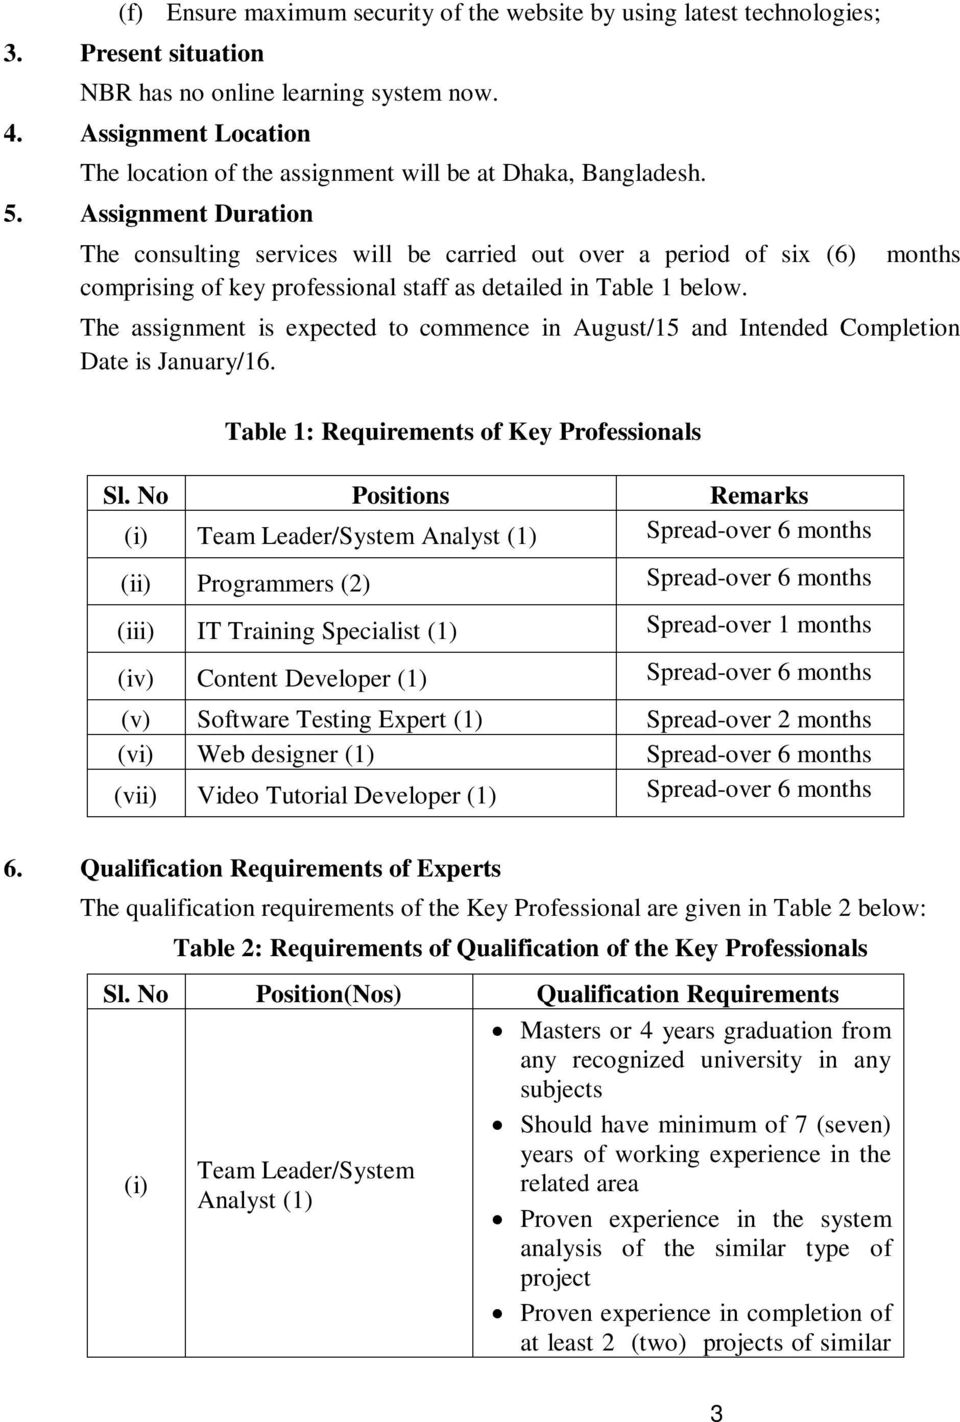 Assignment Duration The consulting services will be carried out over a period of six (6) comprising of key professional staff as detailed in Table 1 below.